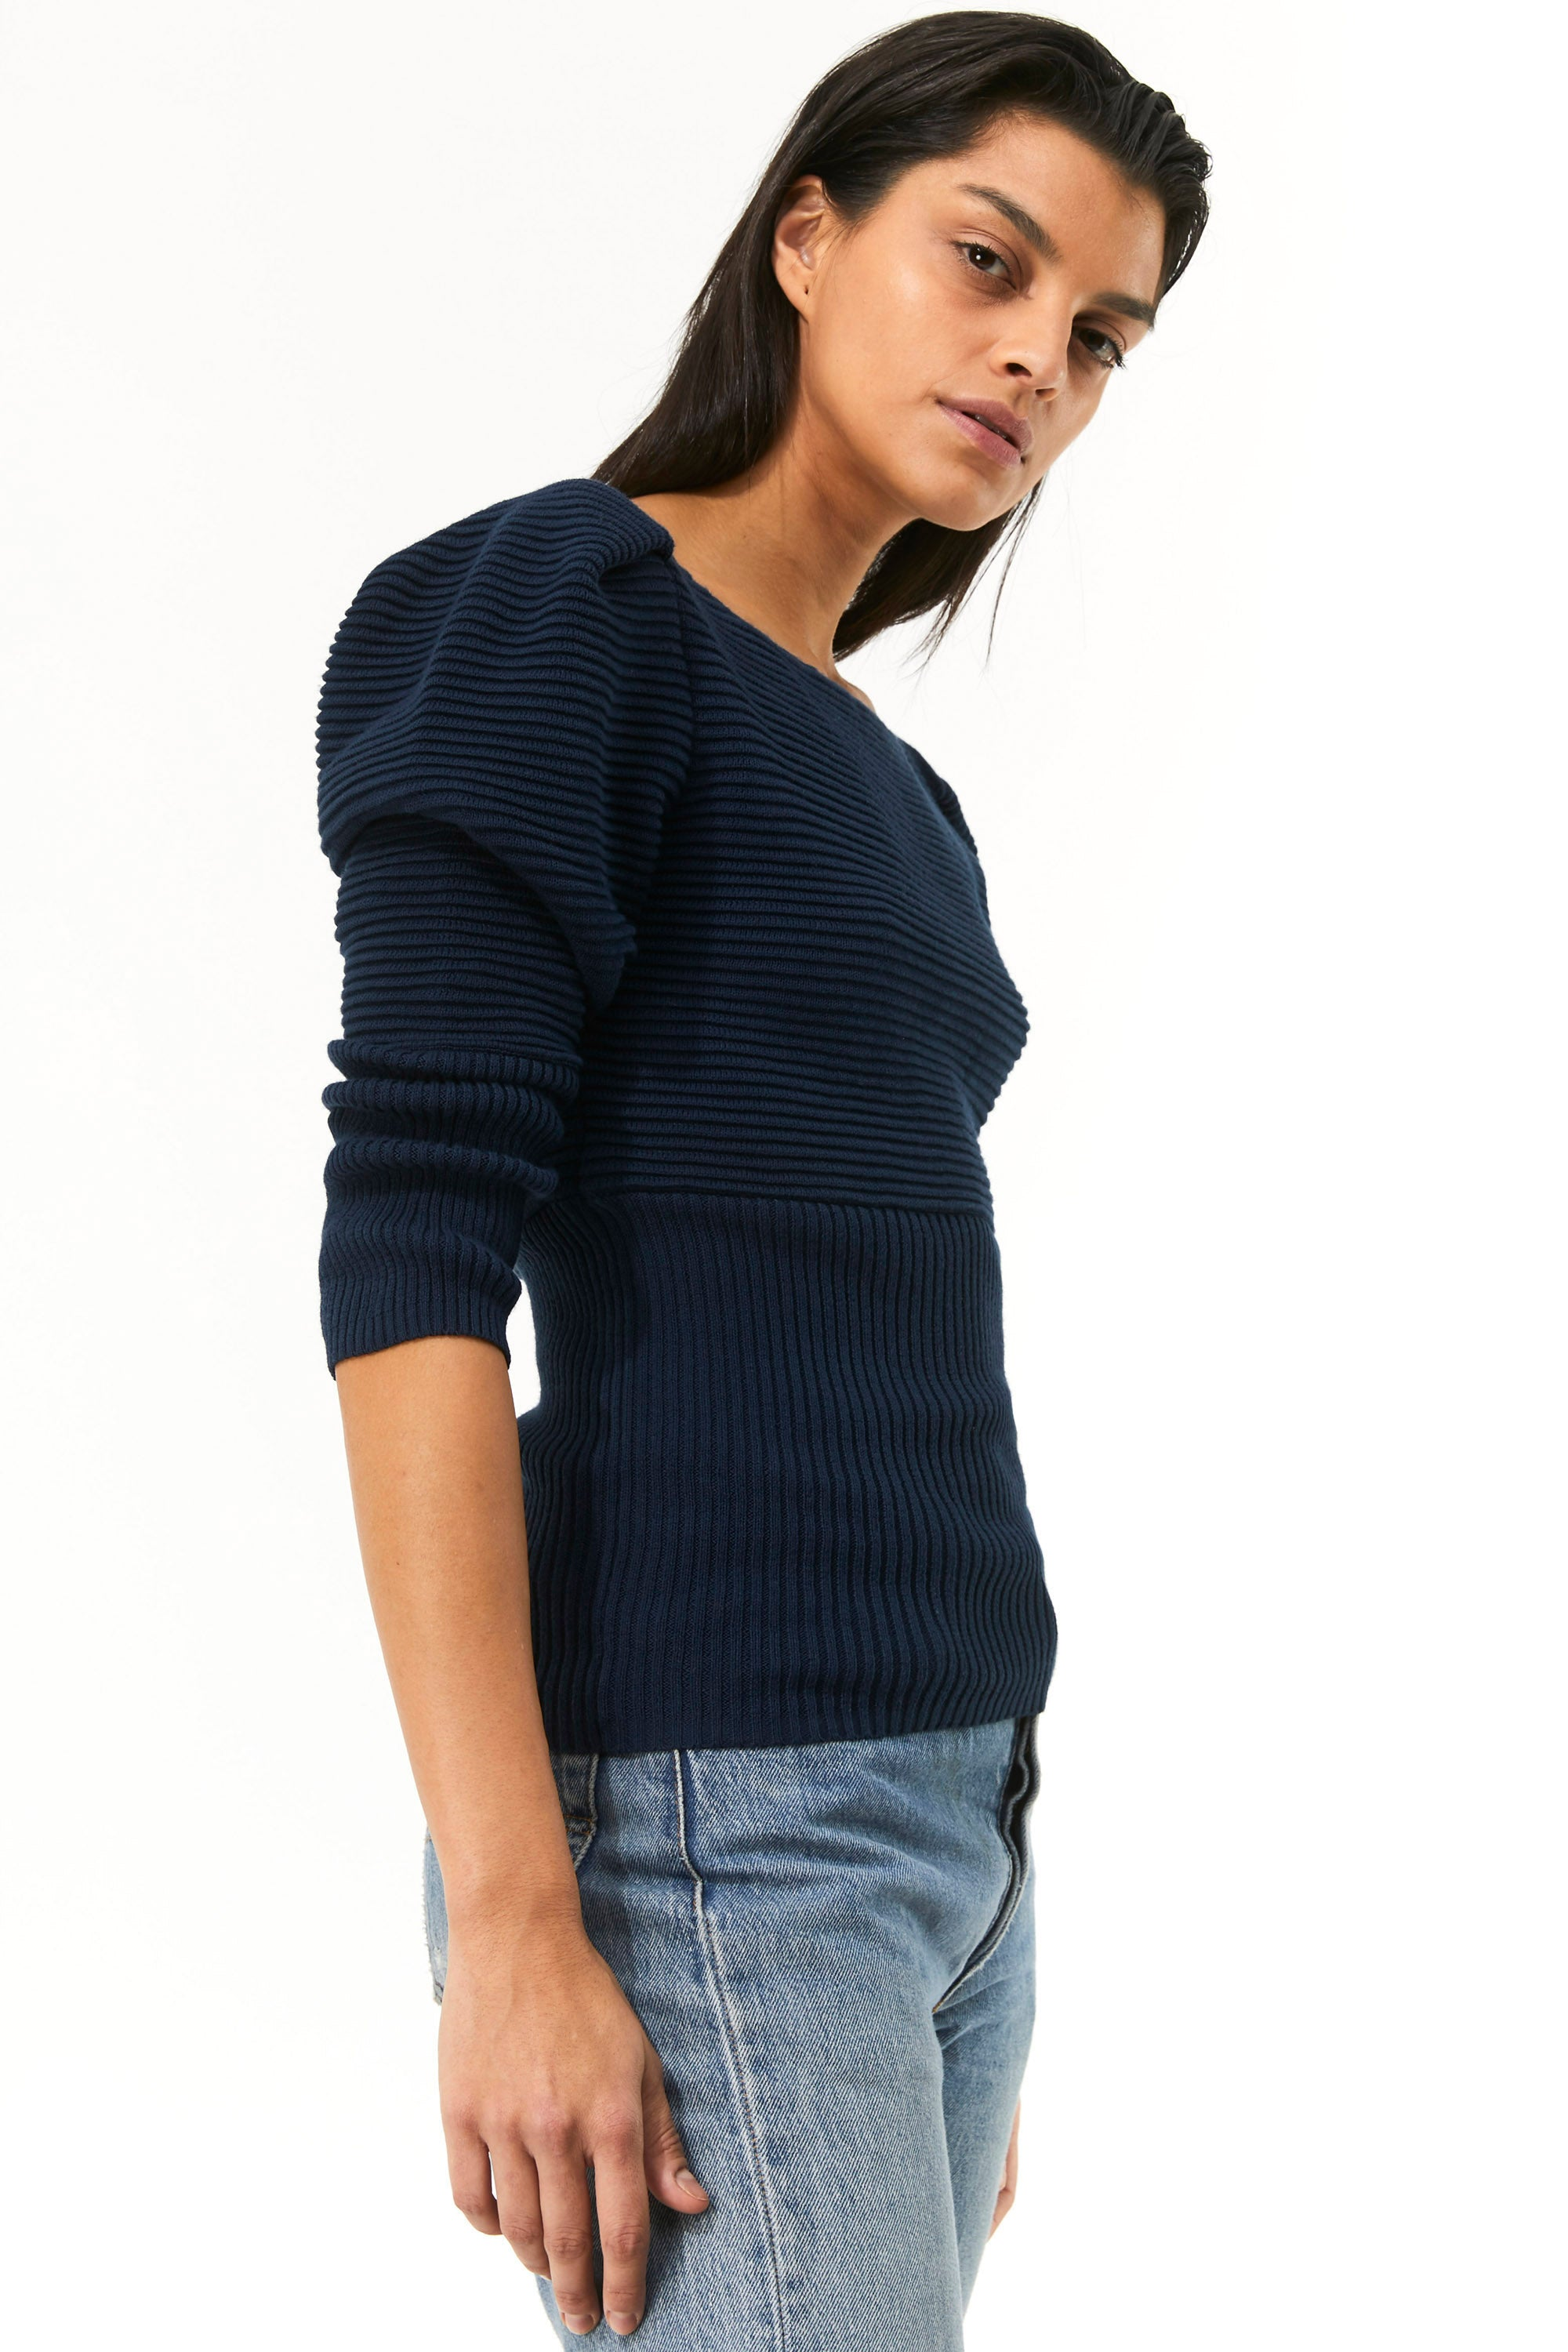 Mara Hoffman Indigo Helena Sweater in organic cotton (side)